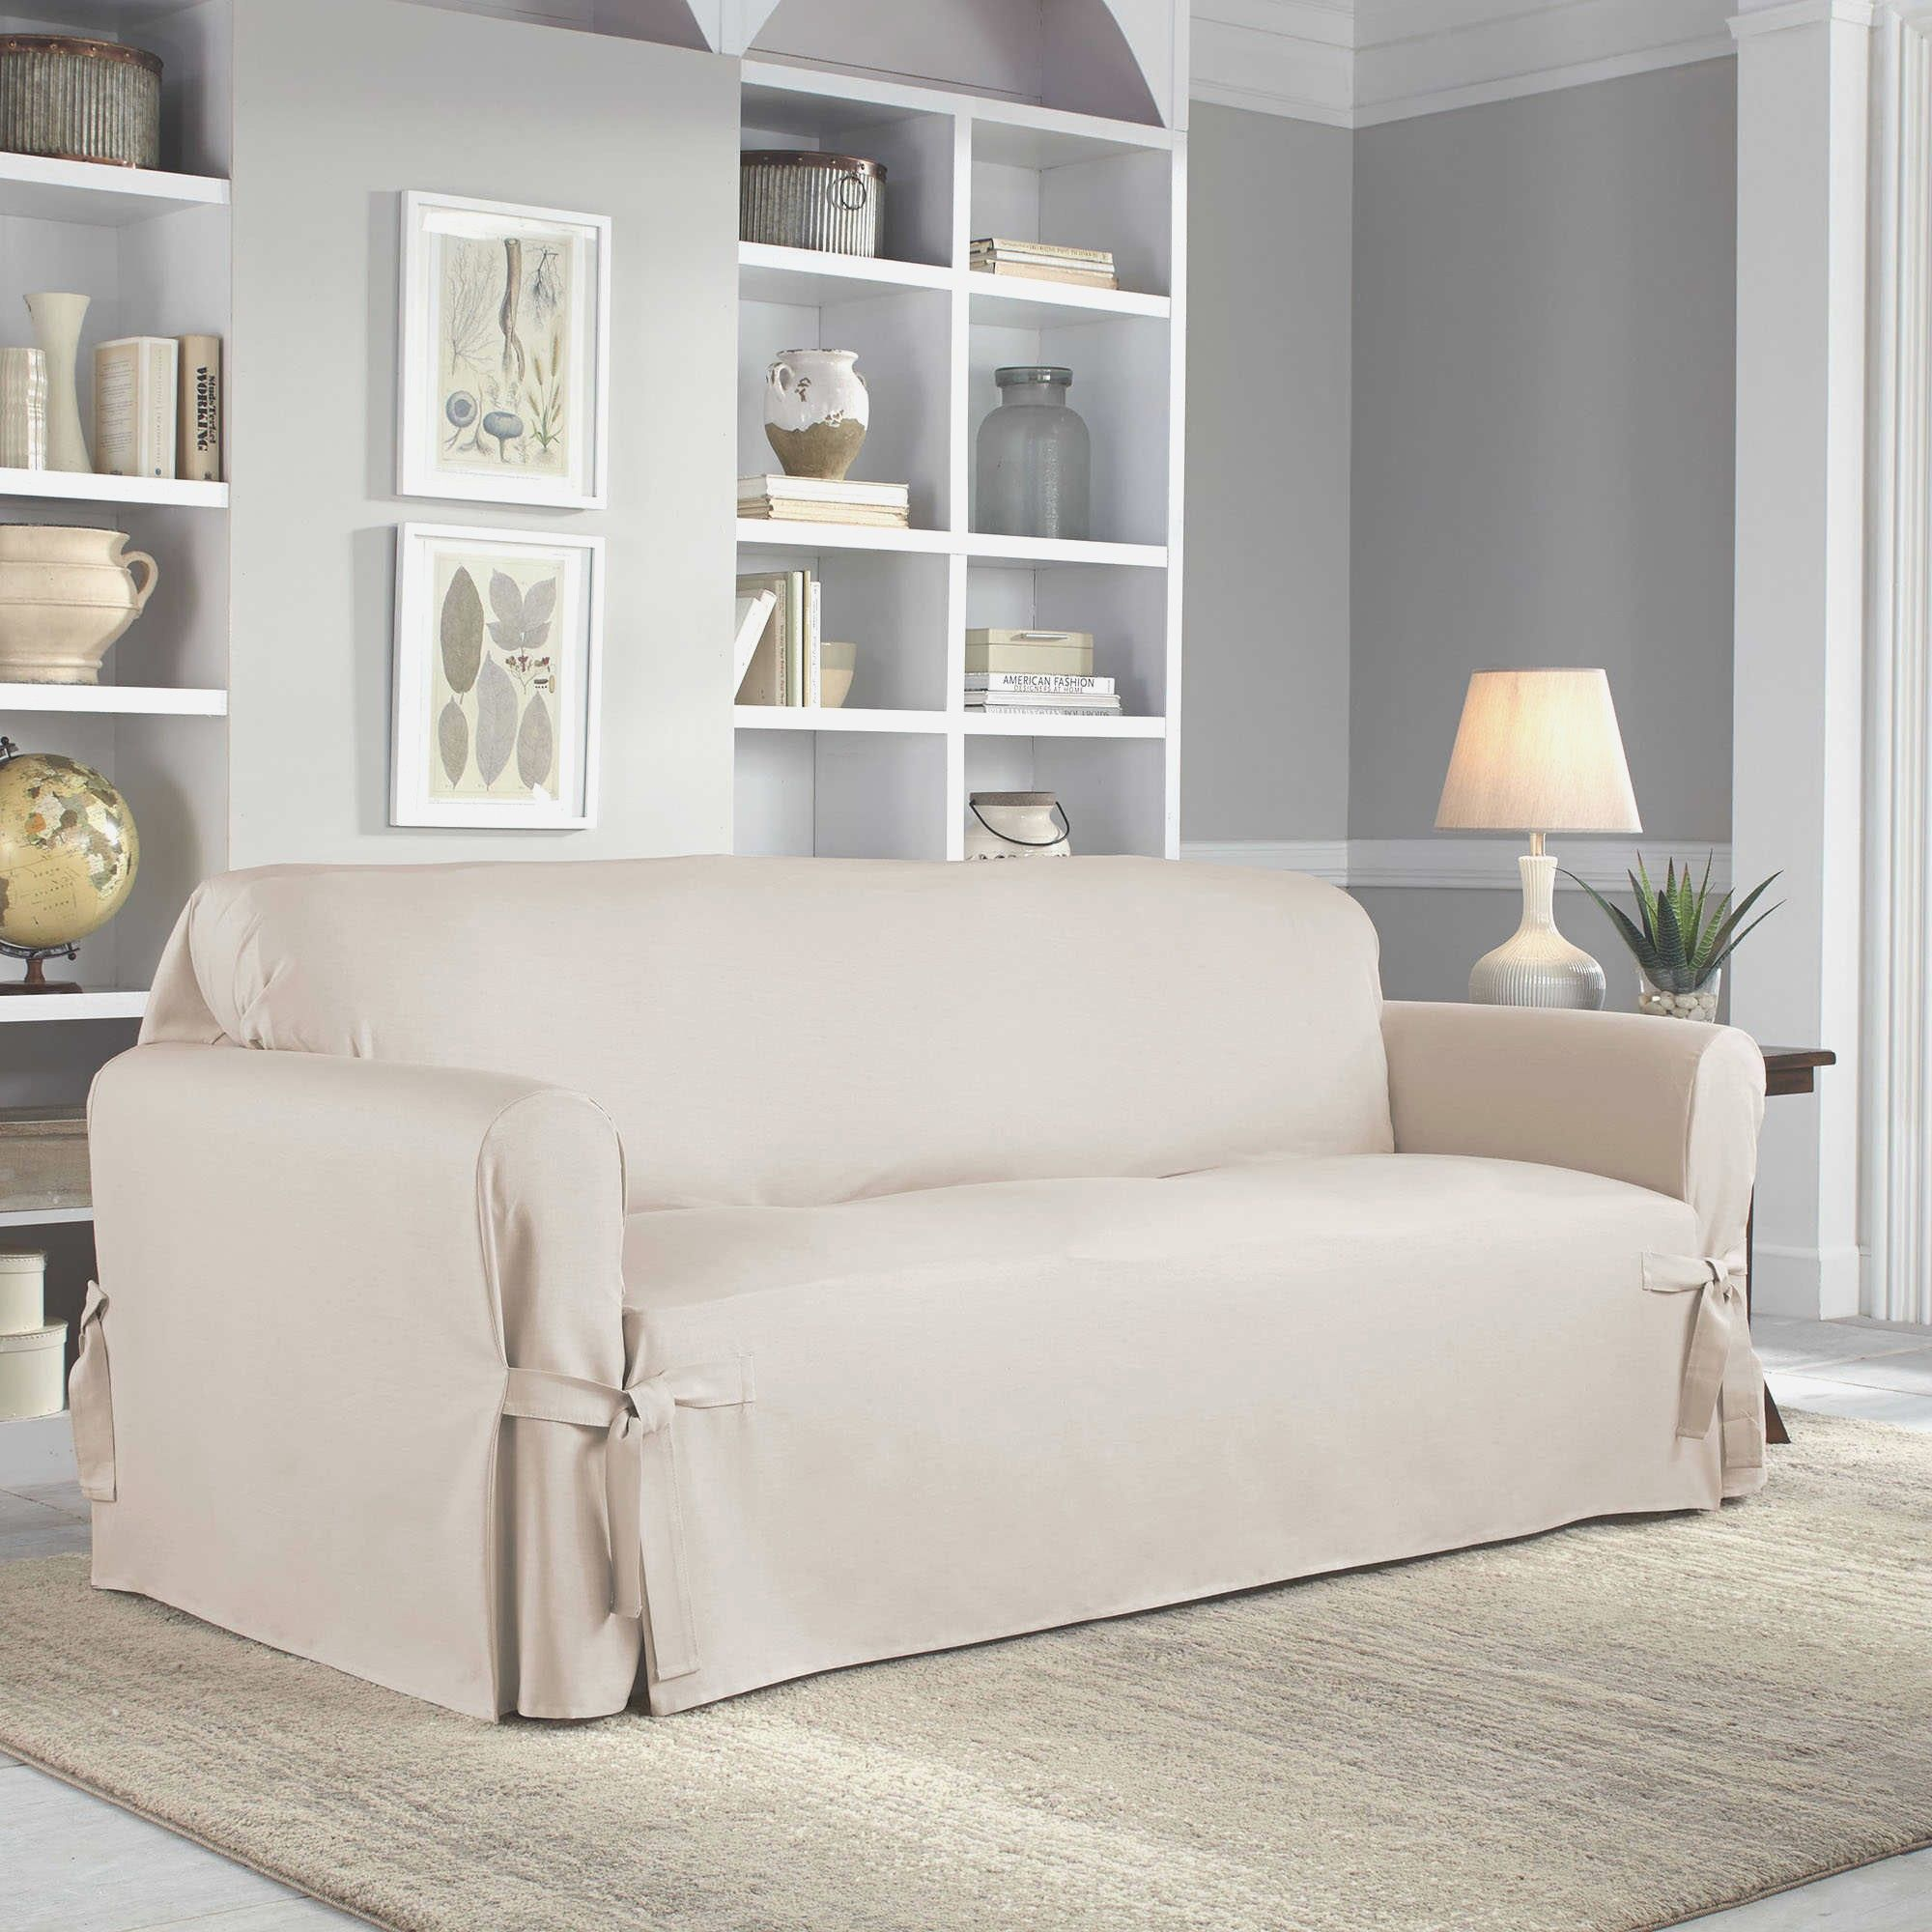 L Shaped Sofa Covers Ikea L Shaped Sofa Bed Cover L Shape Sofa Cover Set L Shape Sofa Set Cov Furniture Slipcovers Slipcovers For Chairs Furniture Loveseat